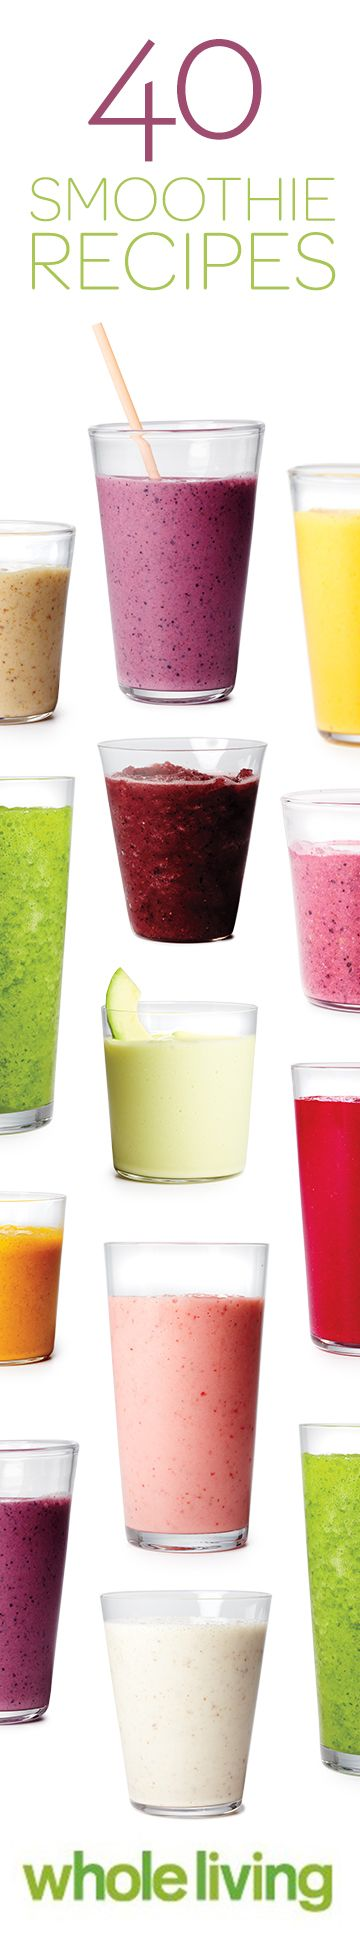 40 Healthy Fruit and Vegetable Smoothies